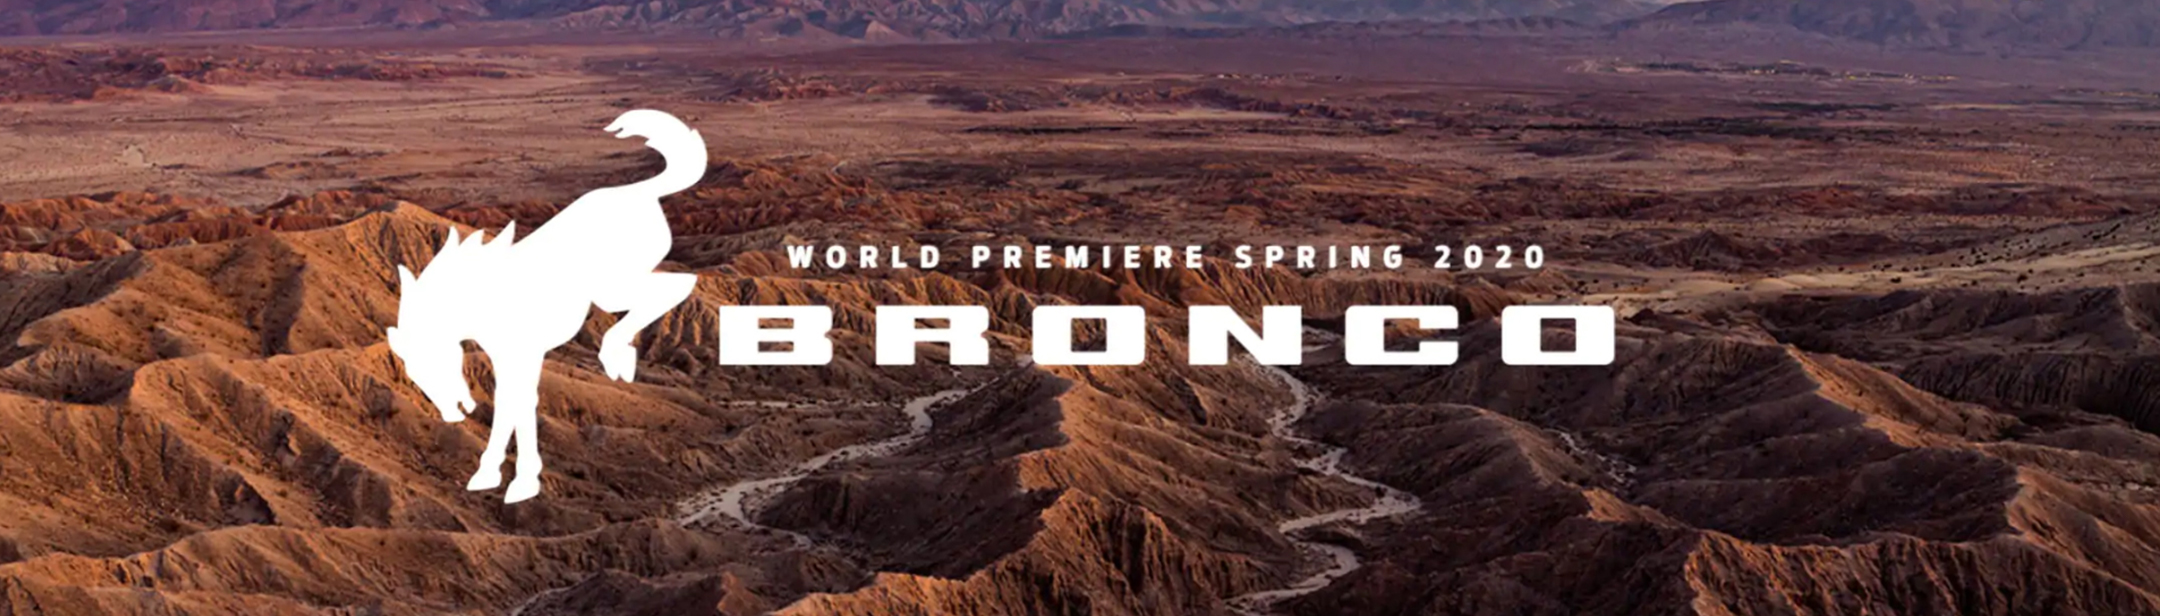 world premiere spring 2020 for ford bronco